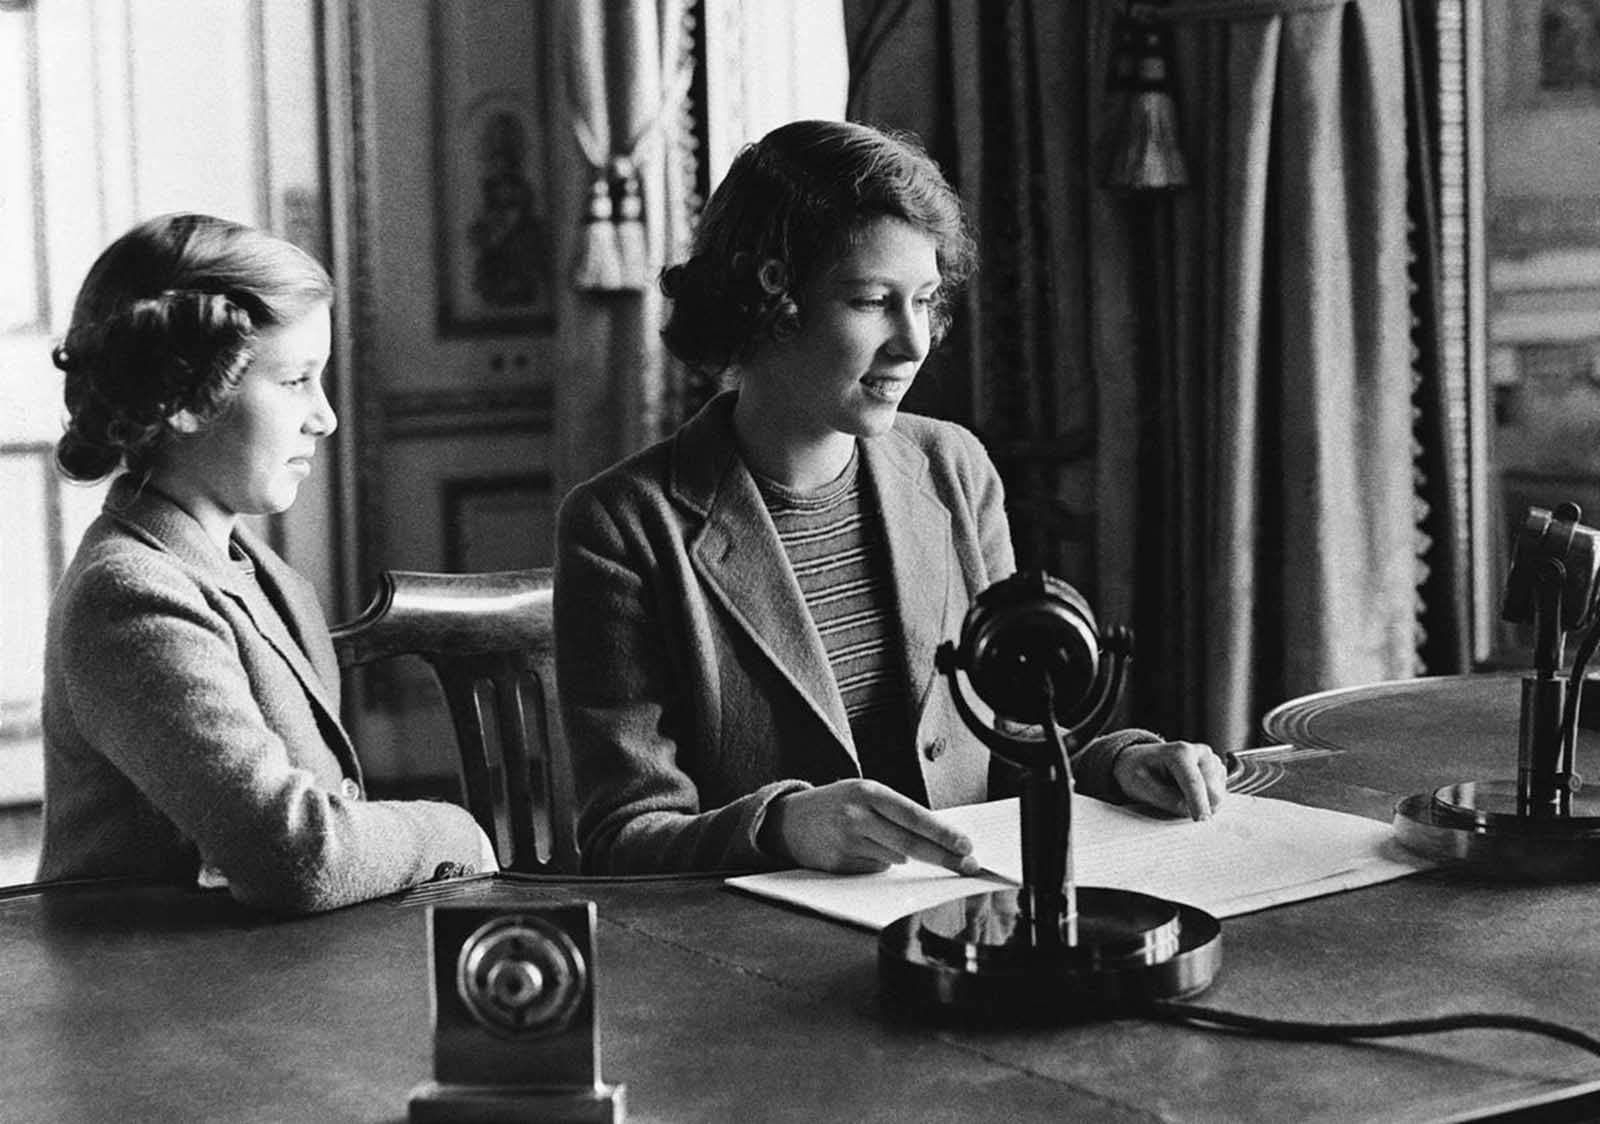 Princess Elizabeth of England (center), 14-year-old heiress apparent to the British throne, makes her broadcast debut, delivering a three-minute speech to British girls and boys evacuated overseas, on October 22, 1940, in London, England. She is joined in bidding good-night to her listeners by her sister, Princess Margaret Rose.